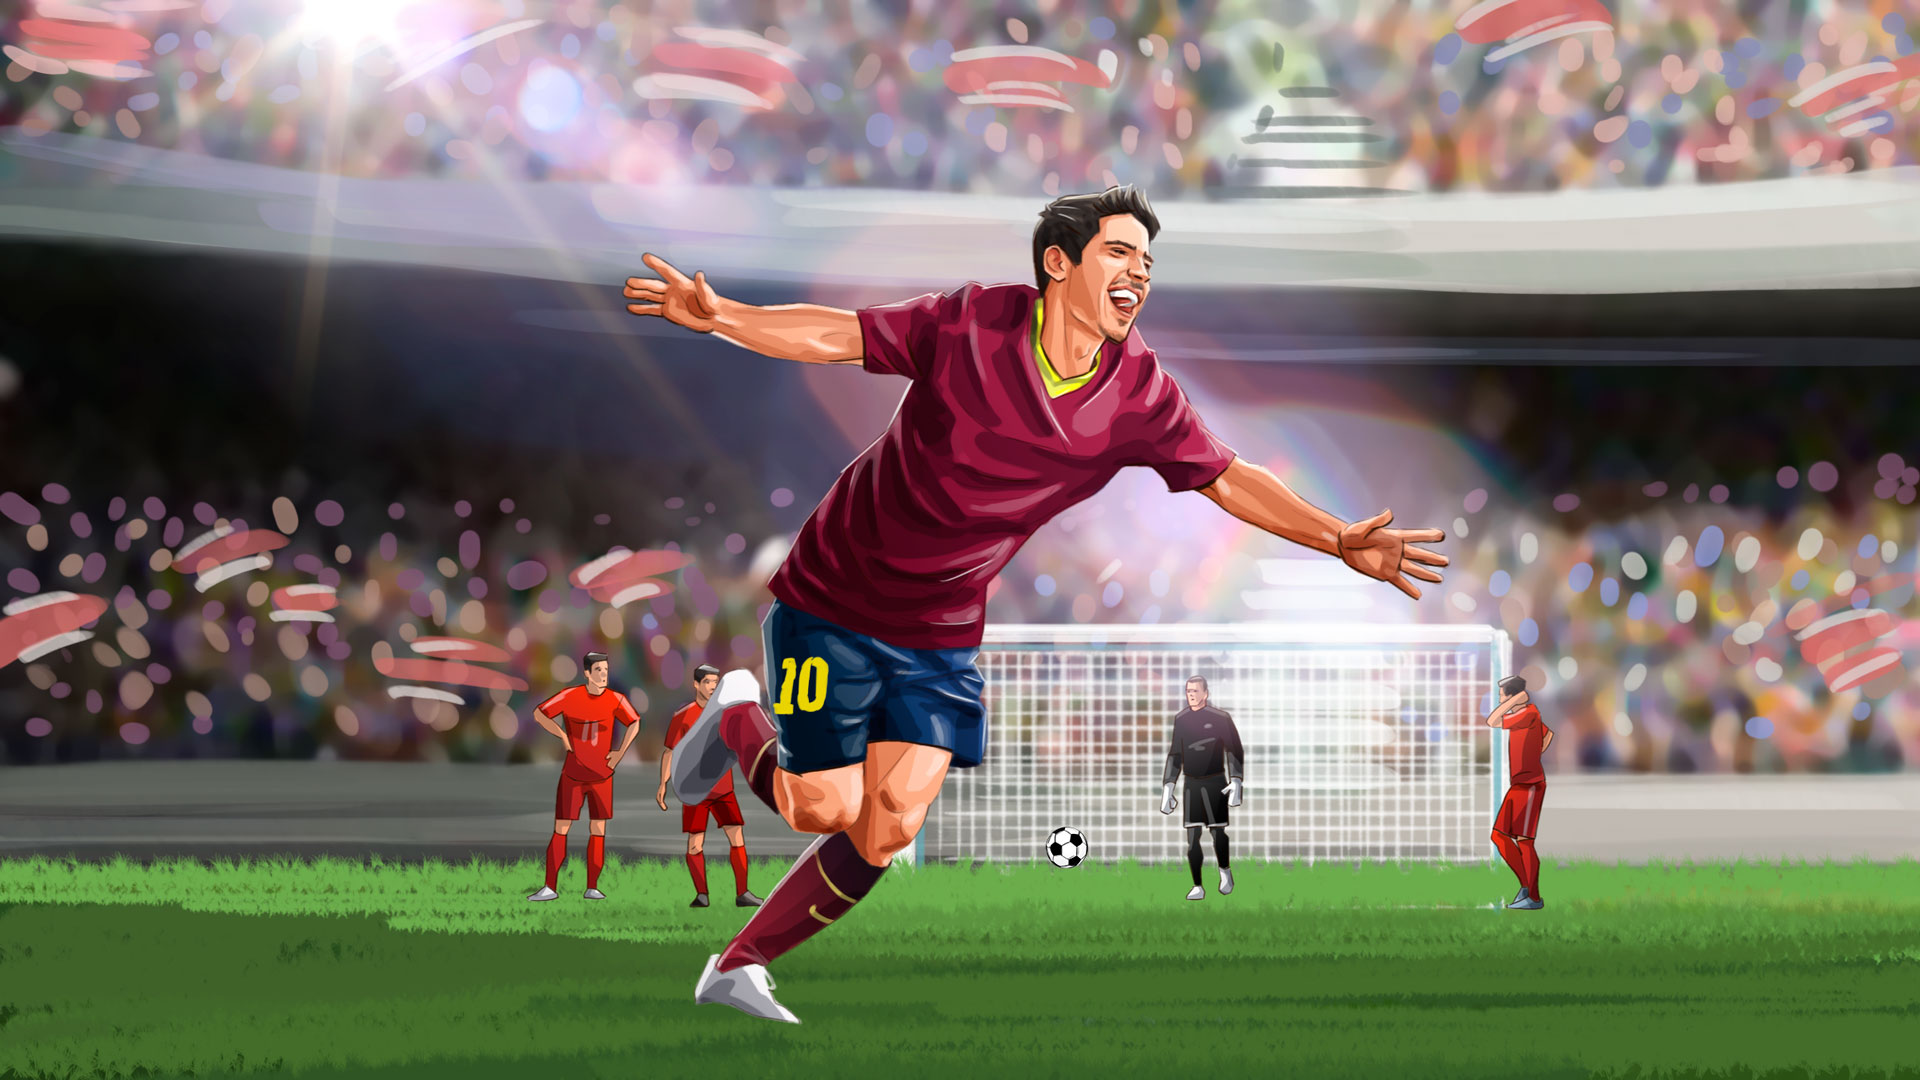 Soccer happy illustration, Famous matches - illustrations for web game